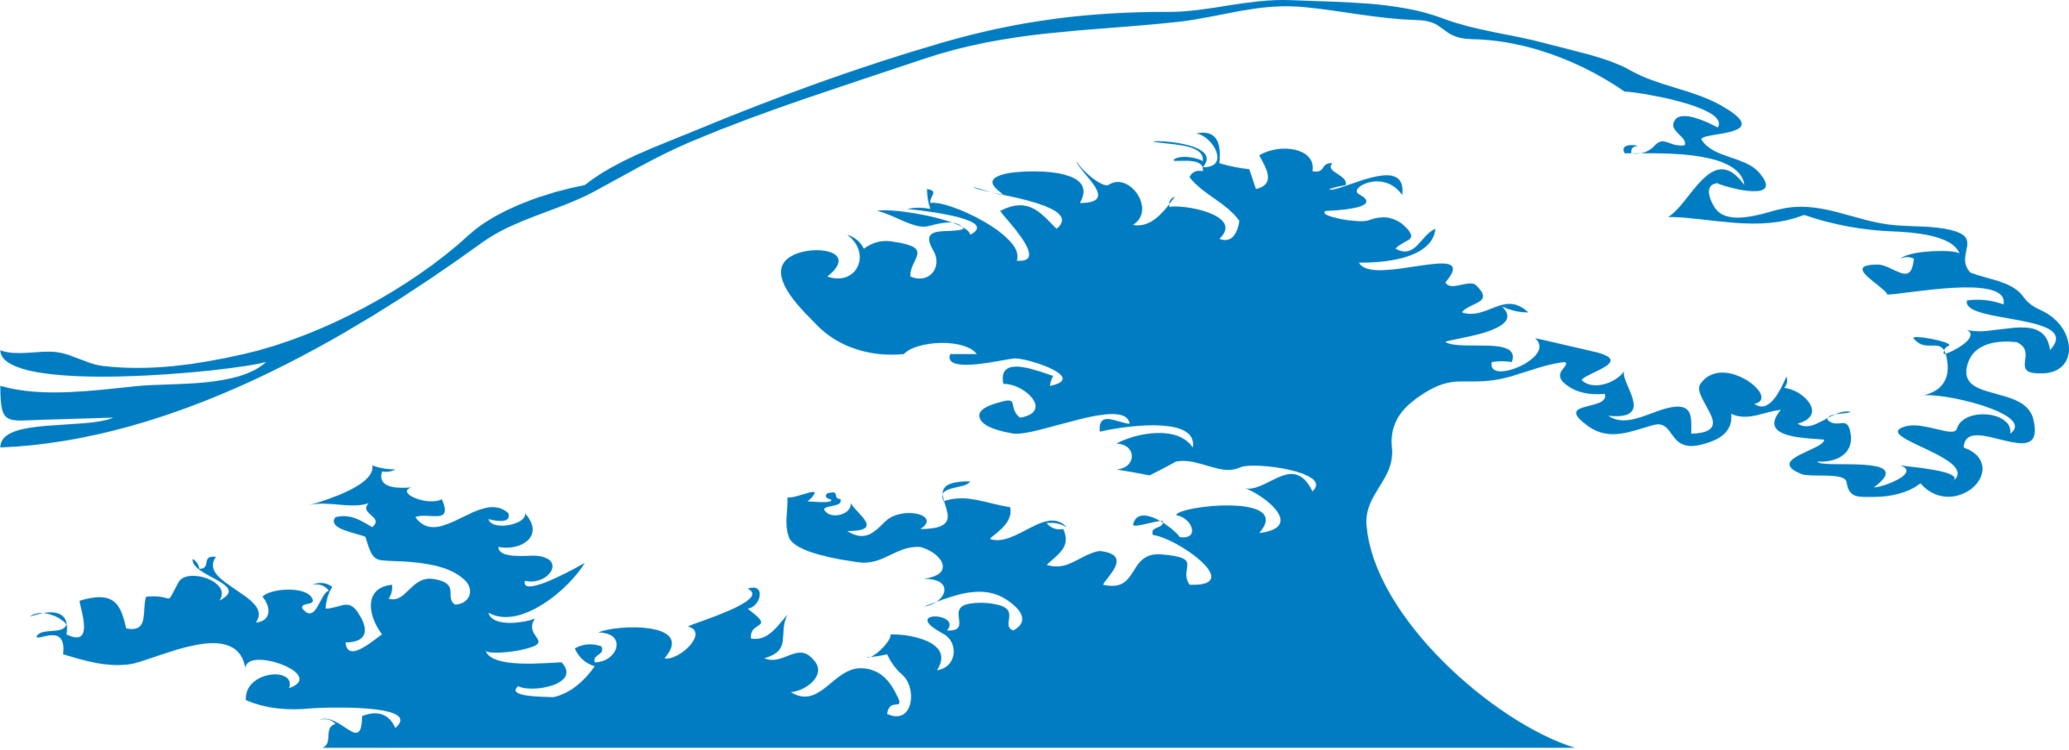 clipart freeuse download Wind wave Ocean Download free commercial clipart